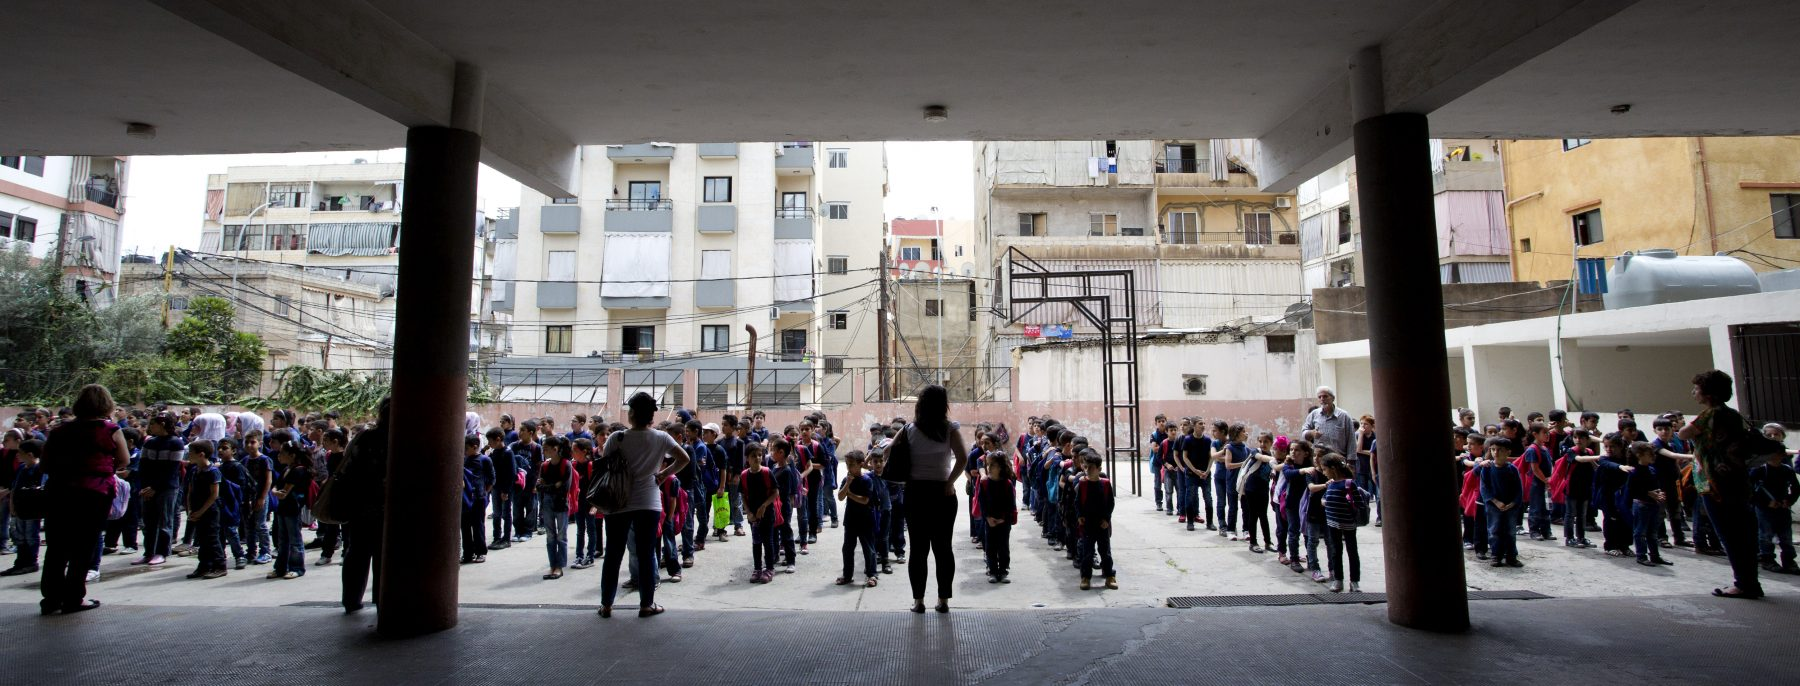 Syrian refugee students line up for classes at Bourjhammoud Public School #2 in Beirut, Lebanon on June 2, 2014. Photo © Dominic Chavez/World Bank